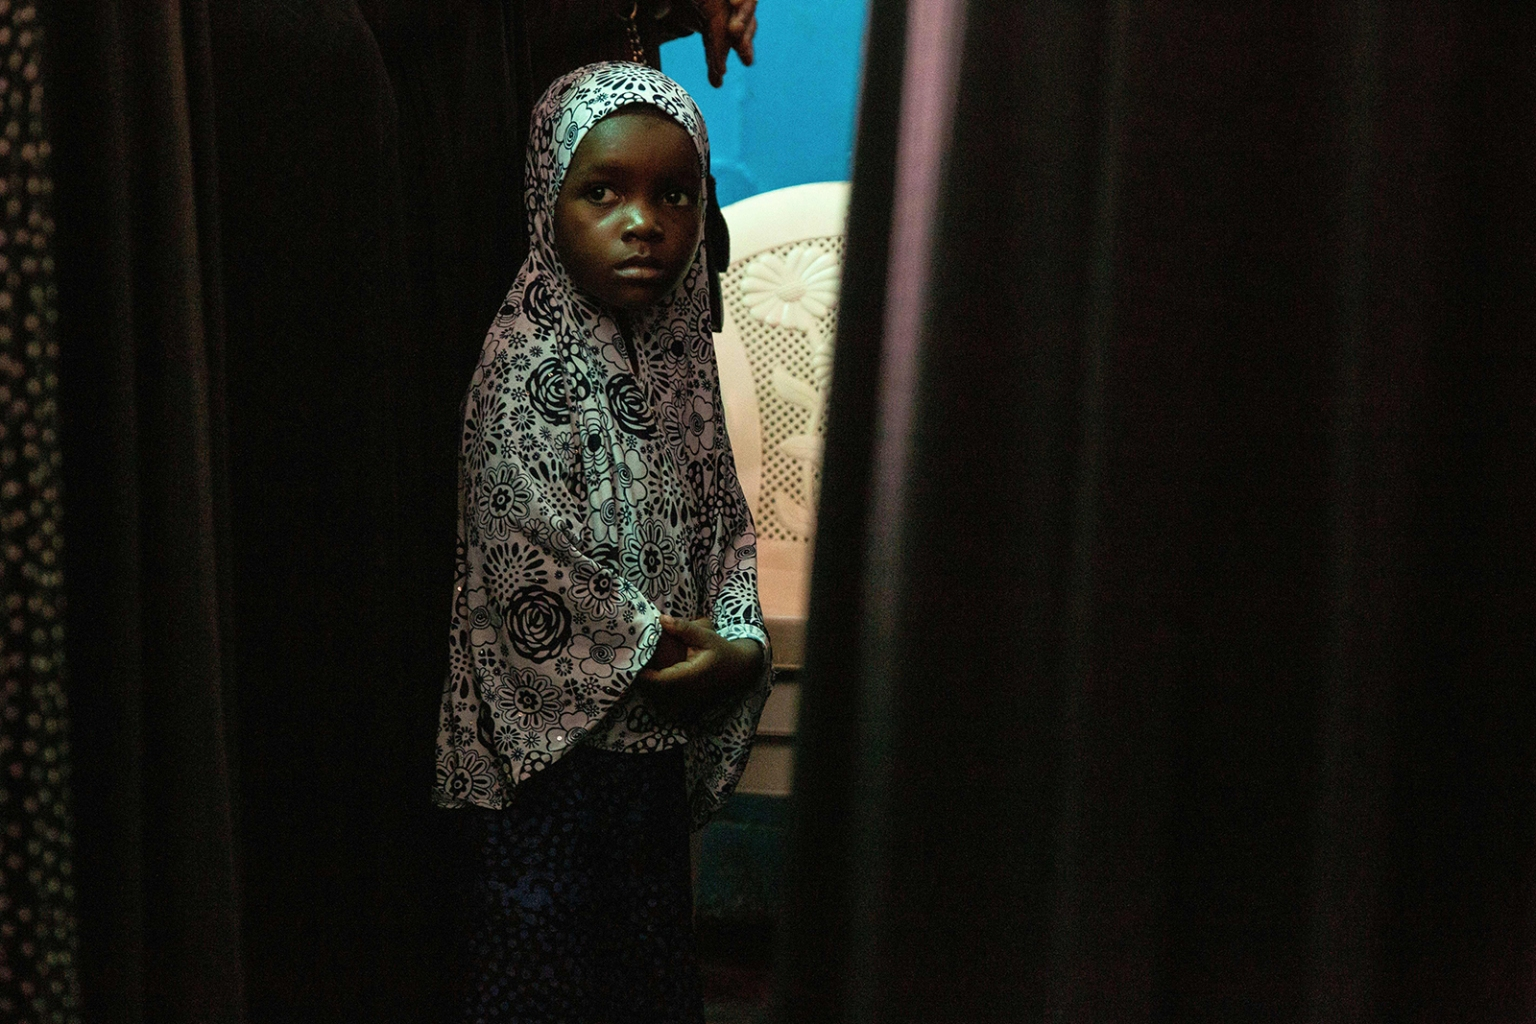 A girl attends a memorial service in Monrovia for victims of a recent fire at a Koranic school in the Liberian capital on Sept. 22. Only eight of the 36 people inside the building survived when the fire broke out in the early morning as the victims slept in the school dormitory. CARIELLE DOE/AFP/Getty Images